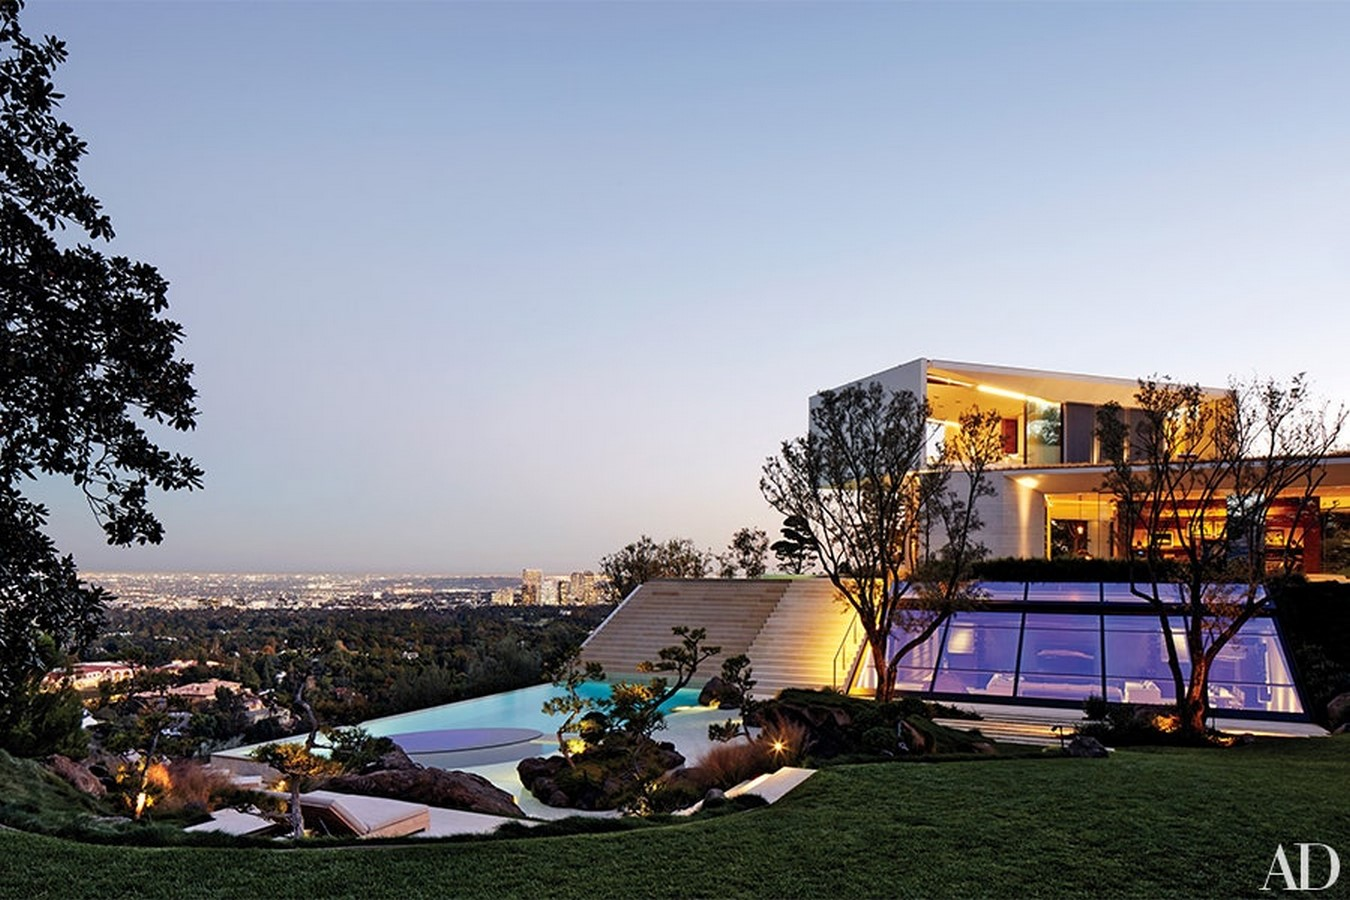 Michael Bay's Los Angeles residence, by Chad Oppenheim - Sheet1